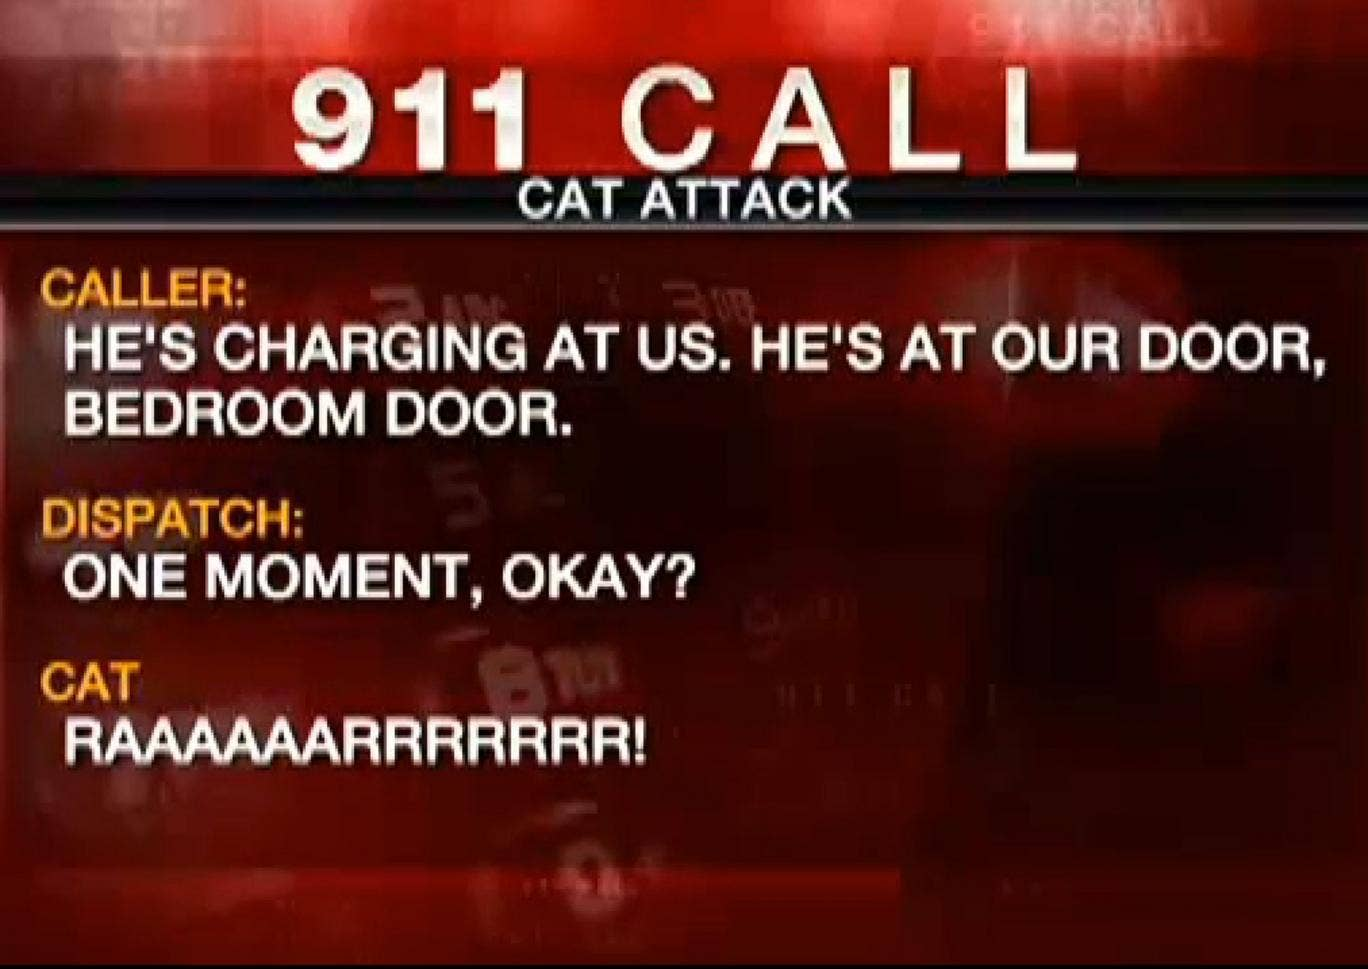 The 911 call - quoting the cat.